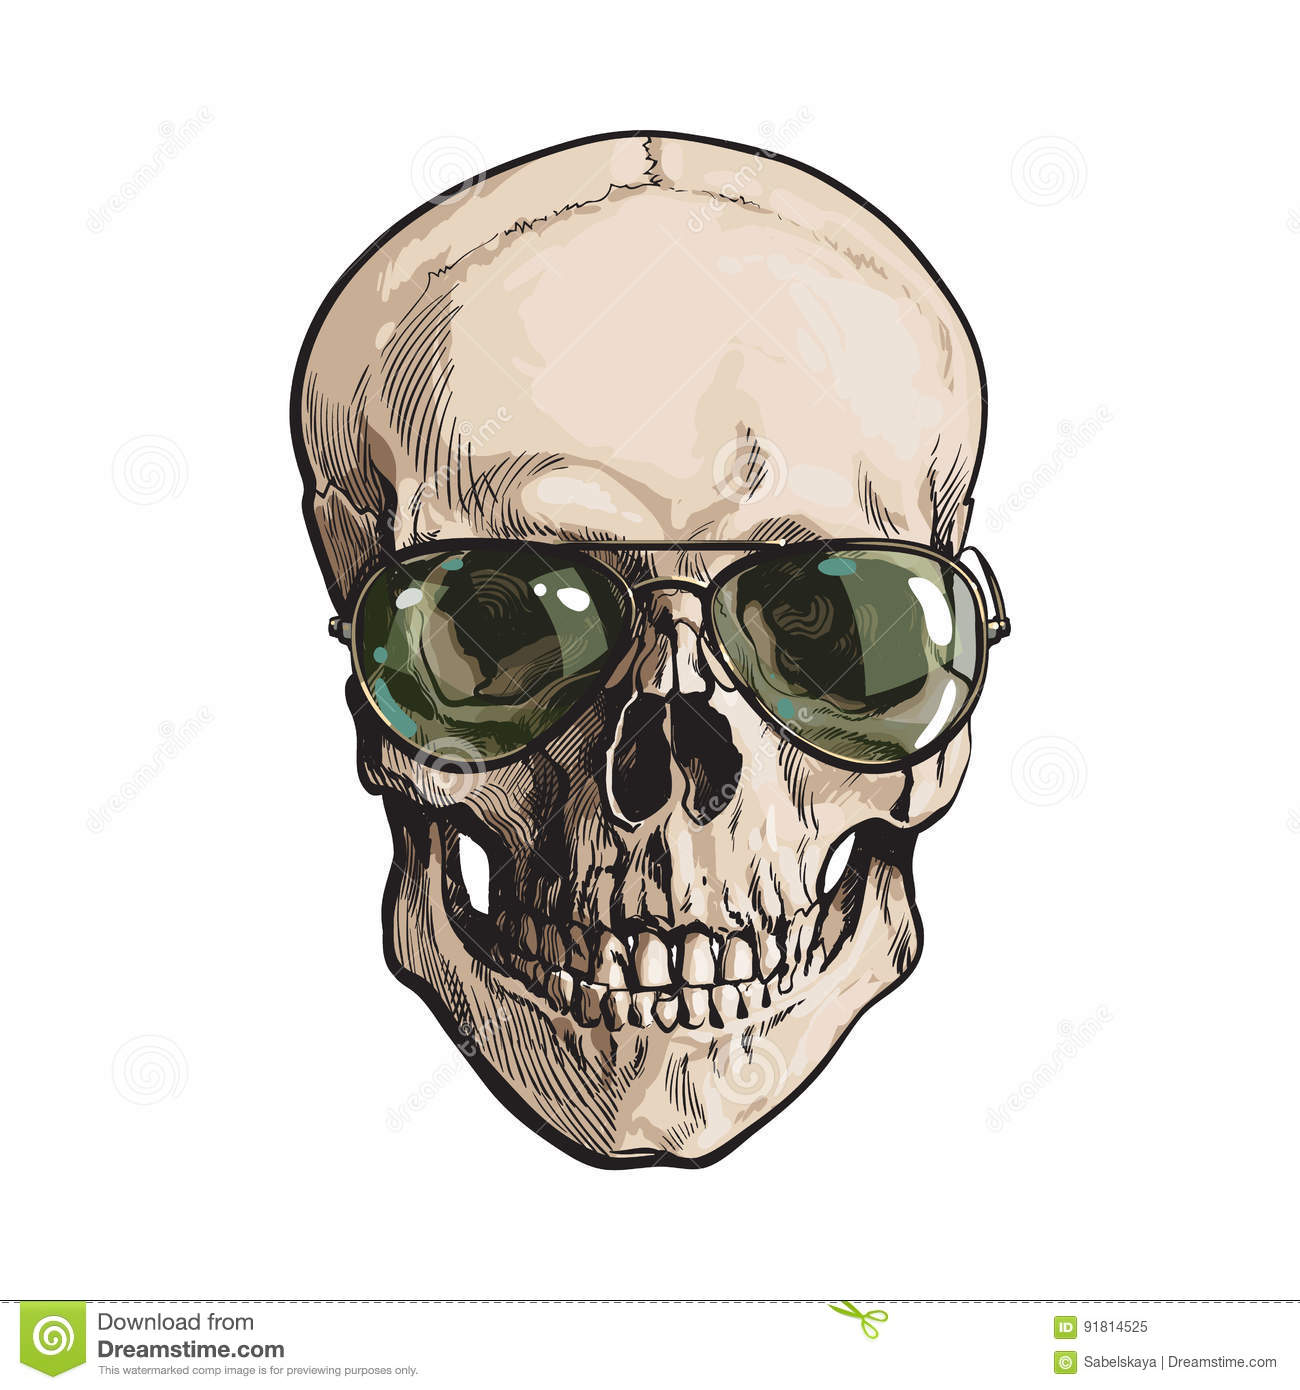 3124c6f3089 Hand Drawn Human Skull Wearing Green Aviator Sunglasses Stock Vector ...